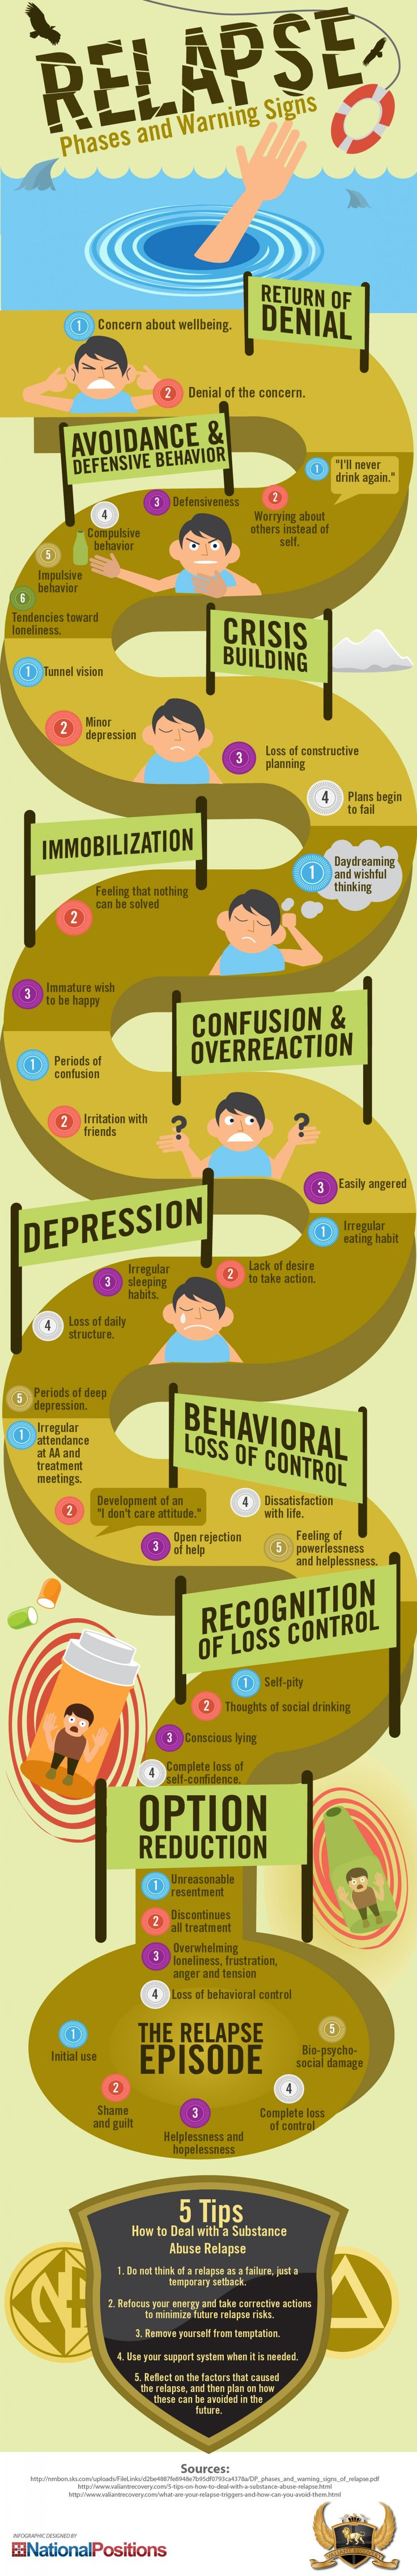 No one wants to go through a relapse. Find out more about the different phases and warning signs in below infographic.